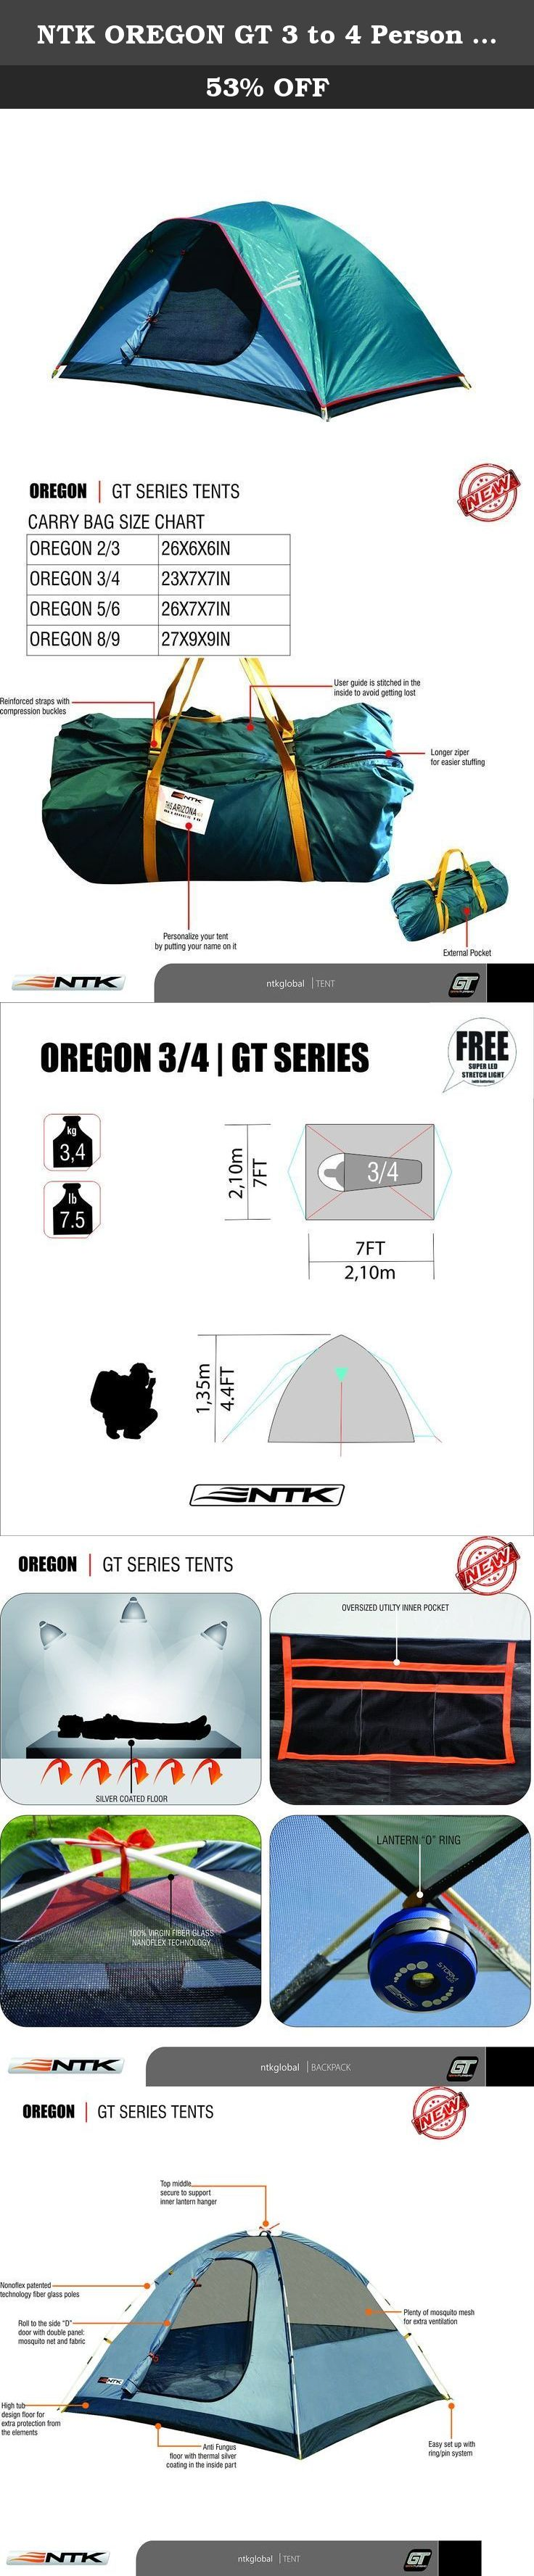 ntk oregon gt 3 to 4 person 7 by 7 foot sport family camping dome tent